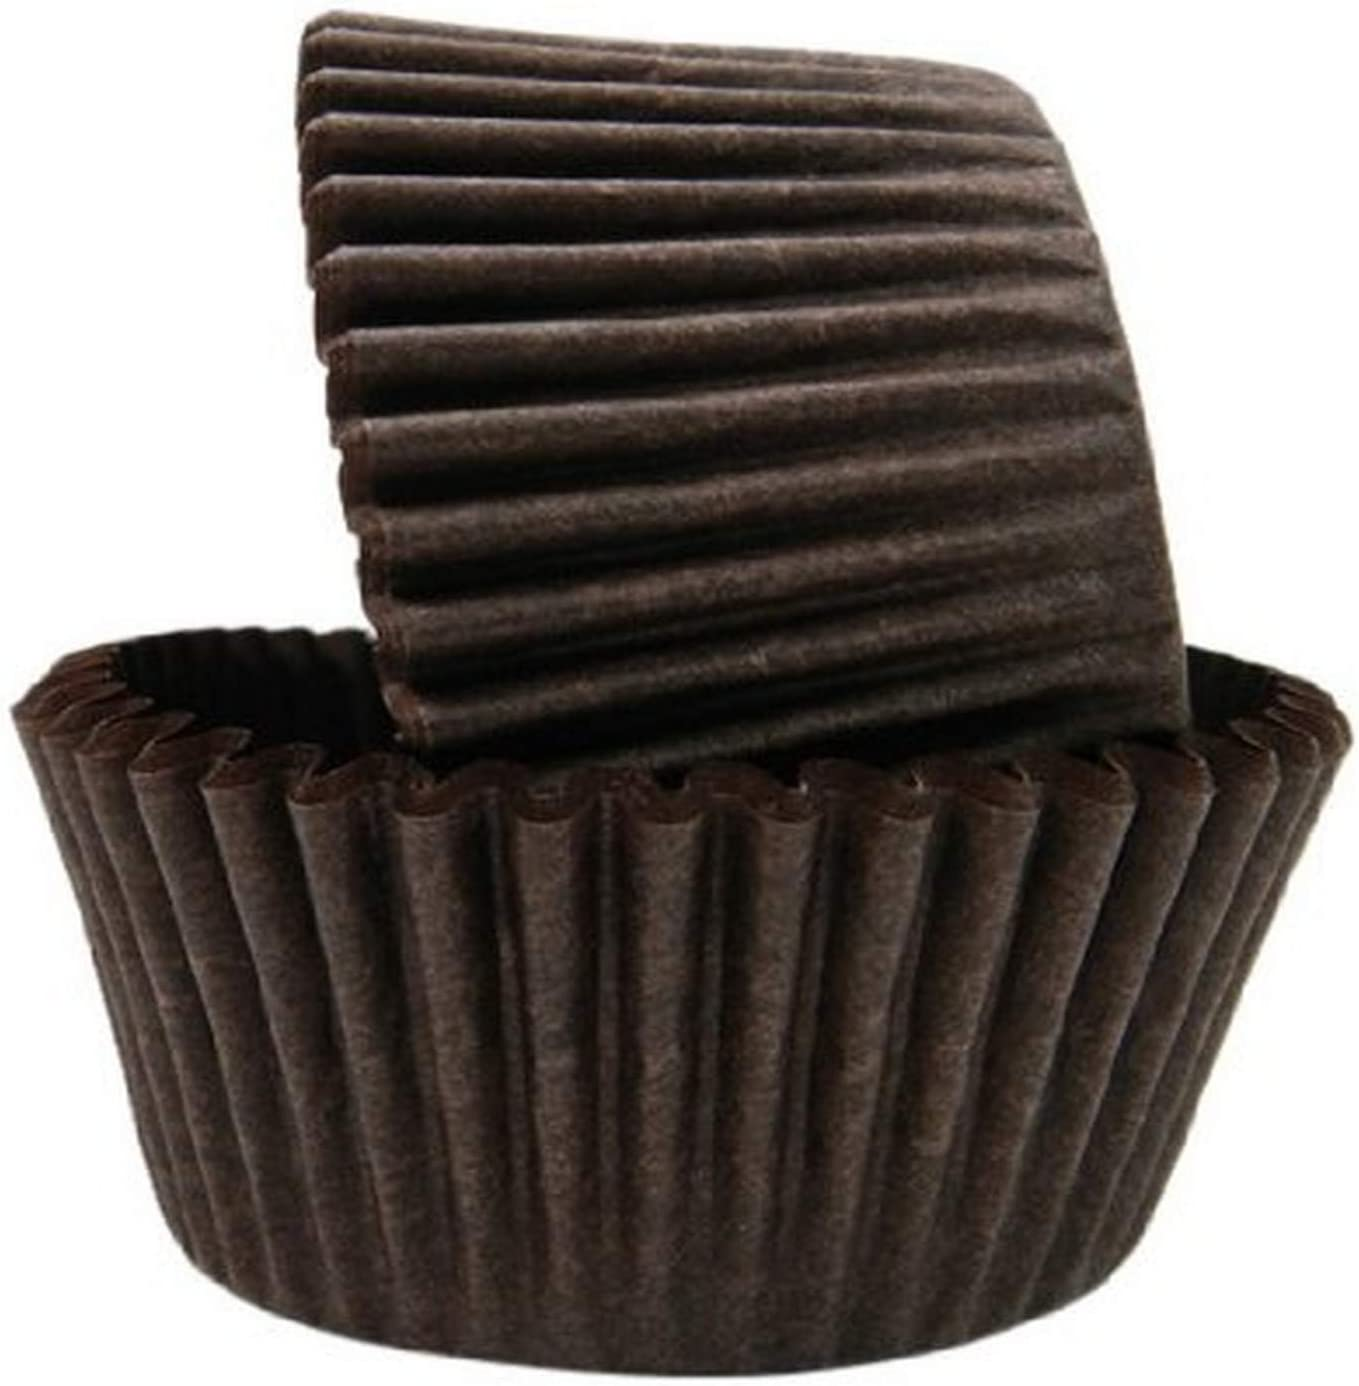 Regency Wraps Greaseproof Baking Cups Solid 40-Count Brown Super sale Spring new work St